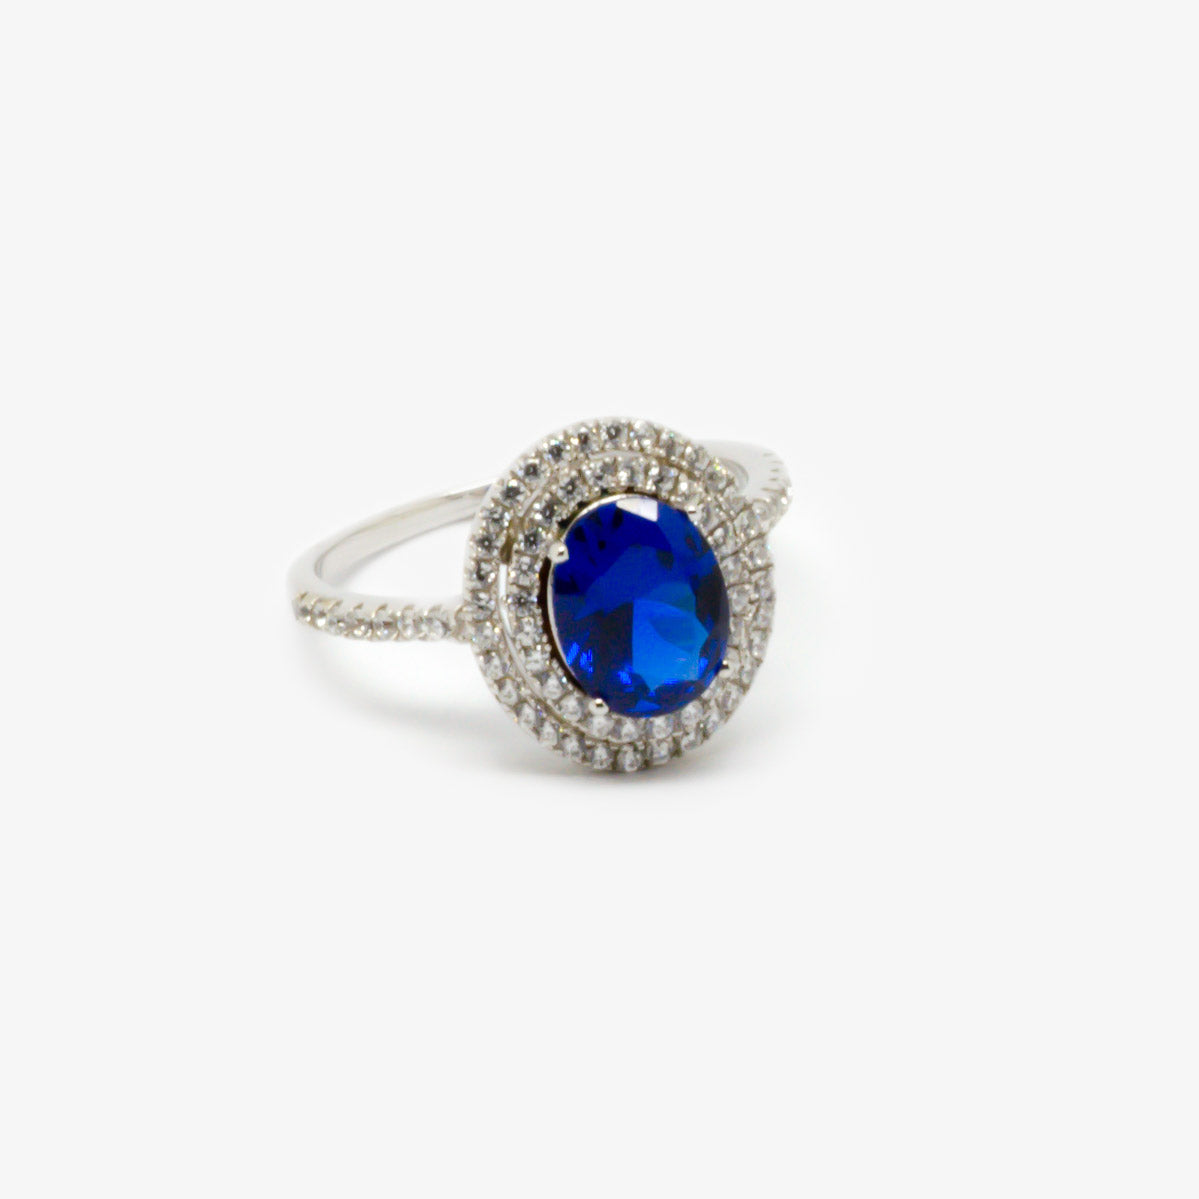 Front view of the double halo blue crystal oval ring.